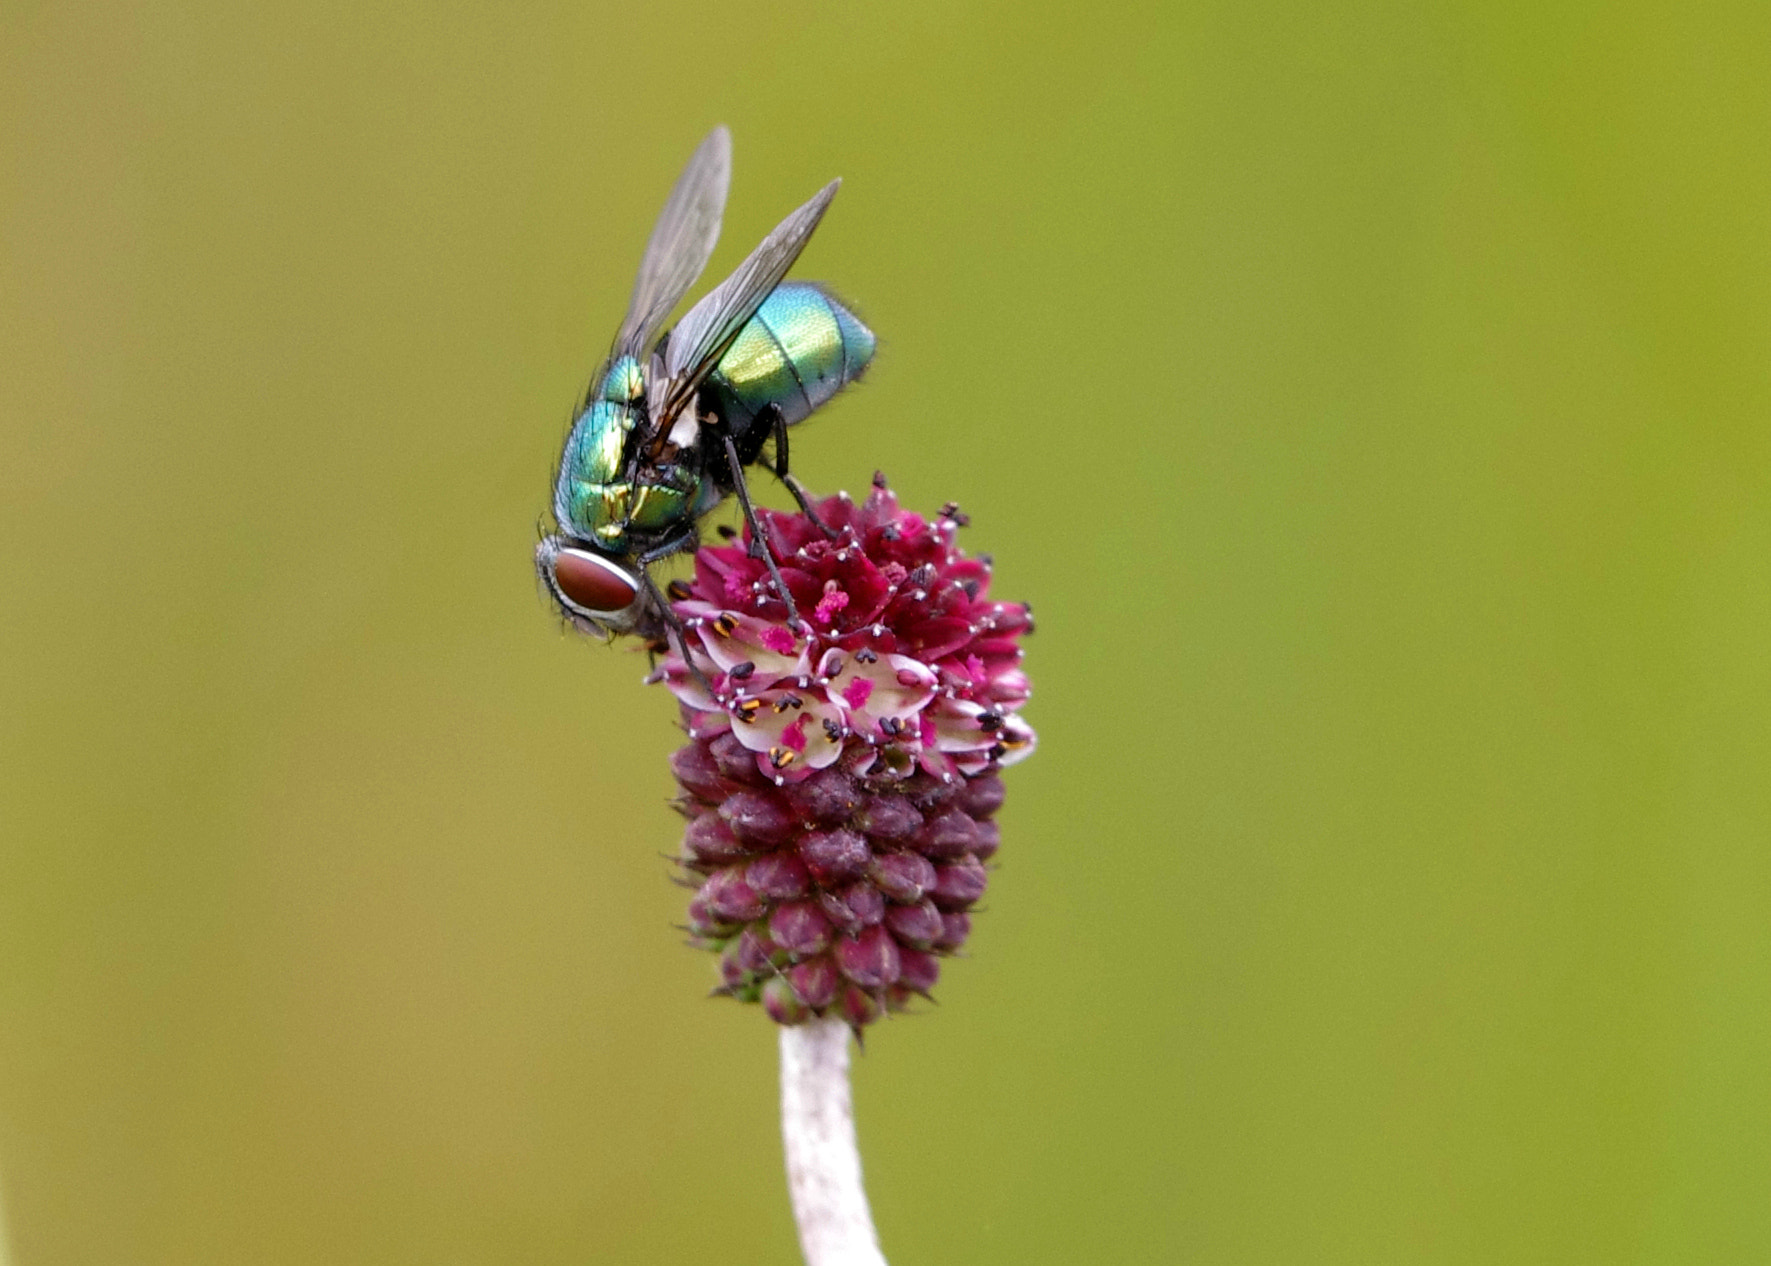 Photograph Fly Macro by Charlie Clayton on 500px